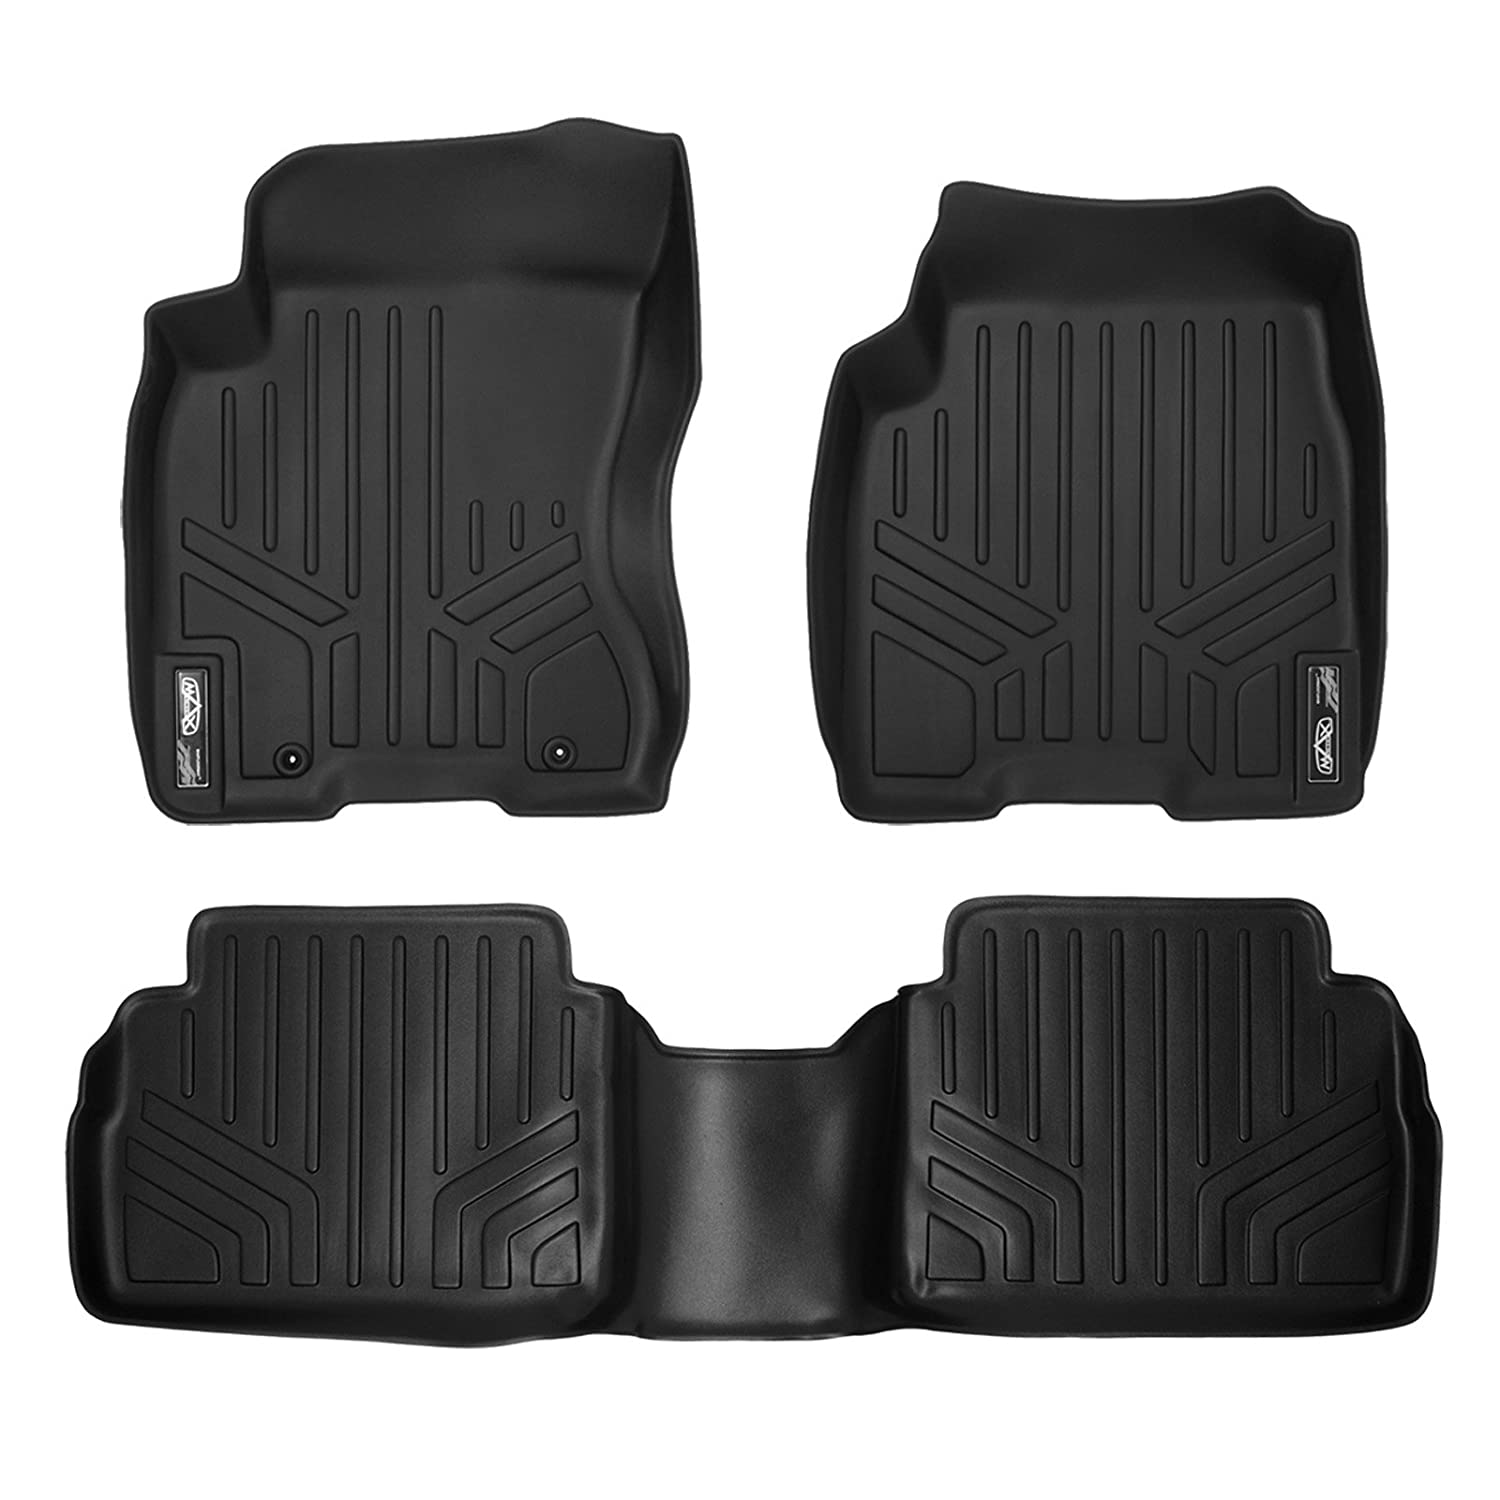 Rubber floor mats nissan rogue - Amazon Com Maxfloormat Floor Mats For Nissan Rogue 2008 2013 Rogue Select 2014 2015 Complete Set Black Automotive